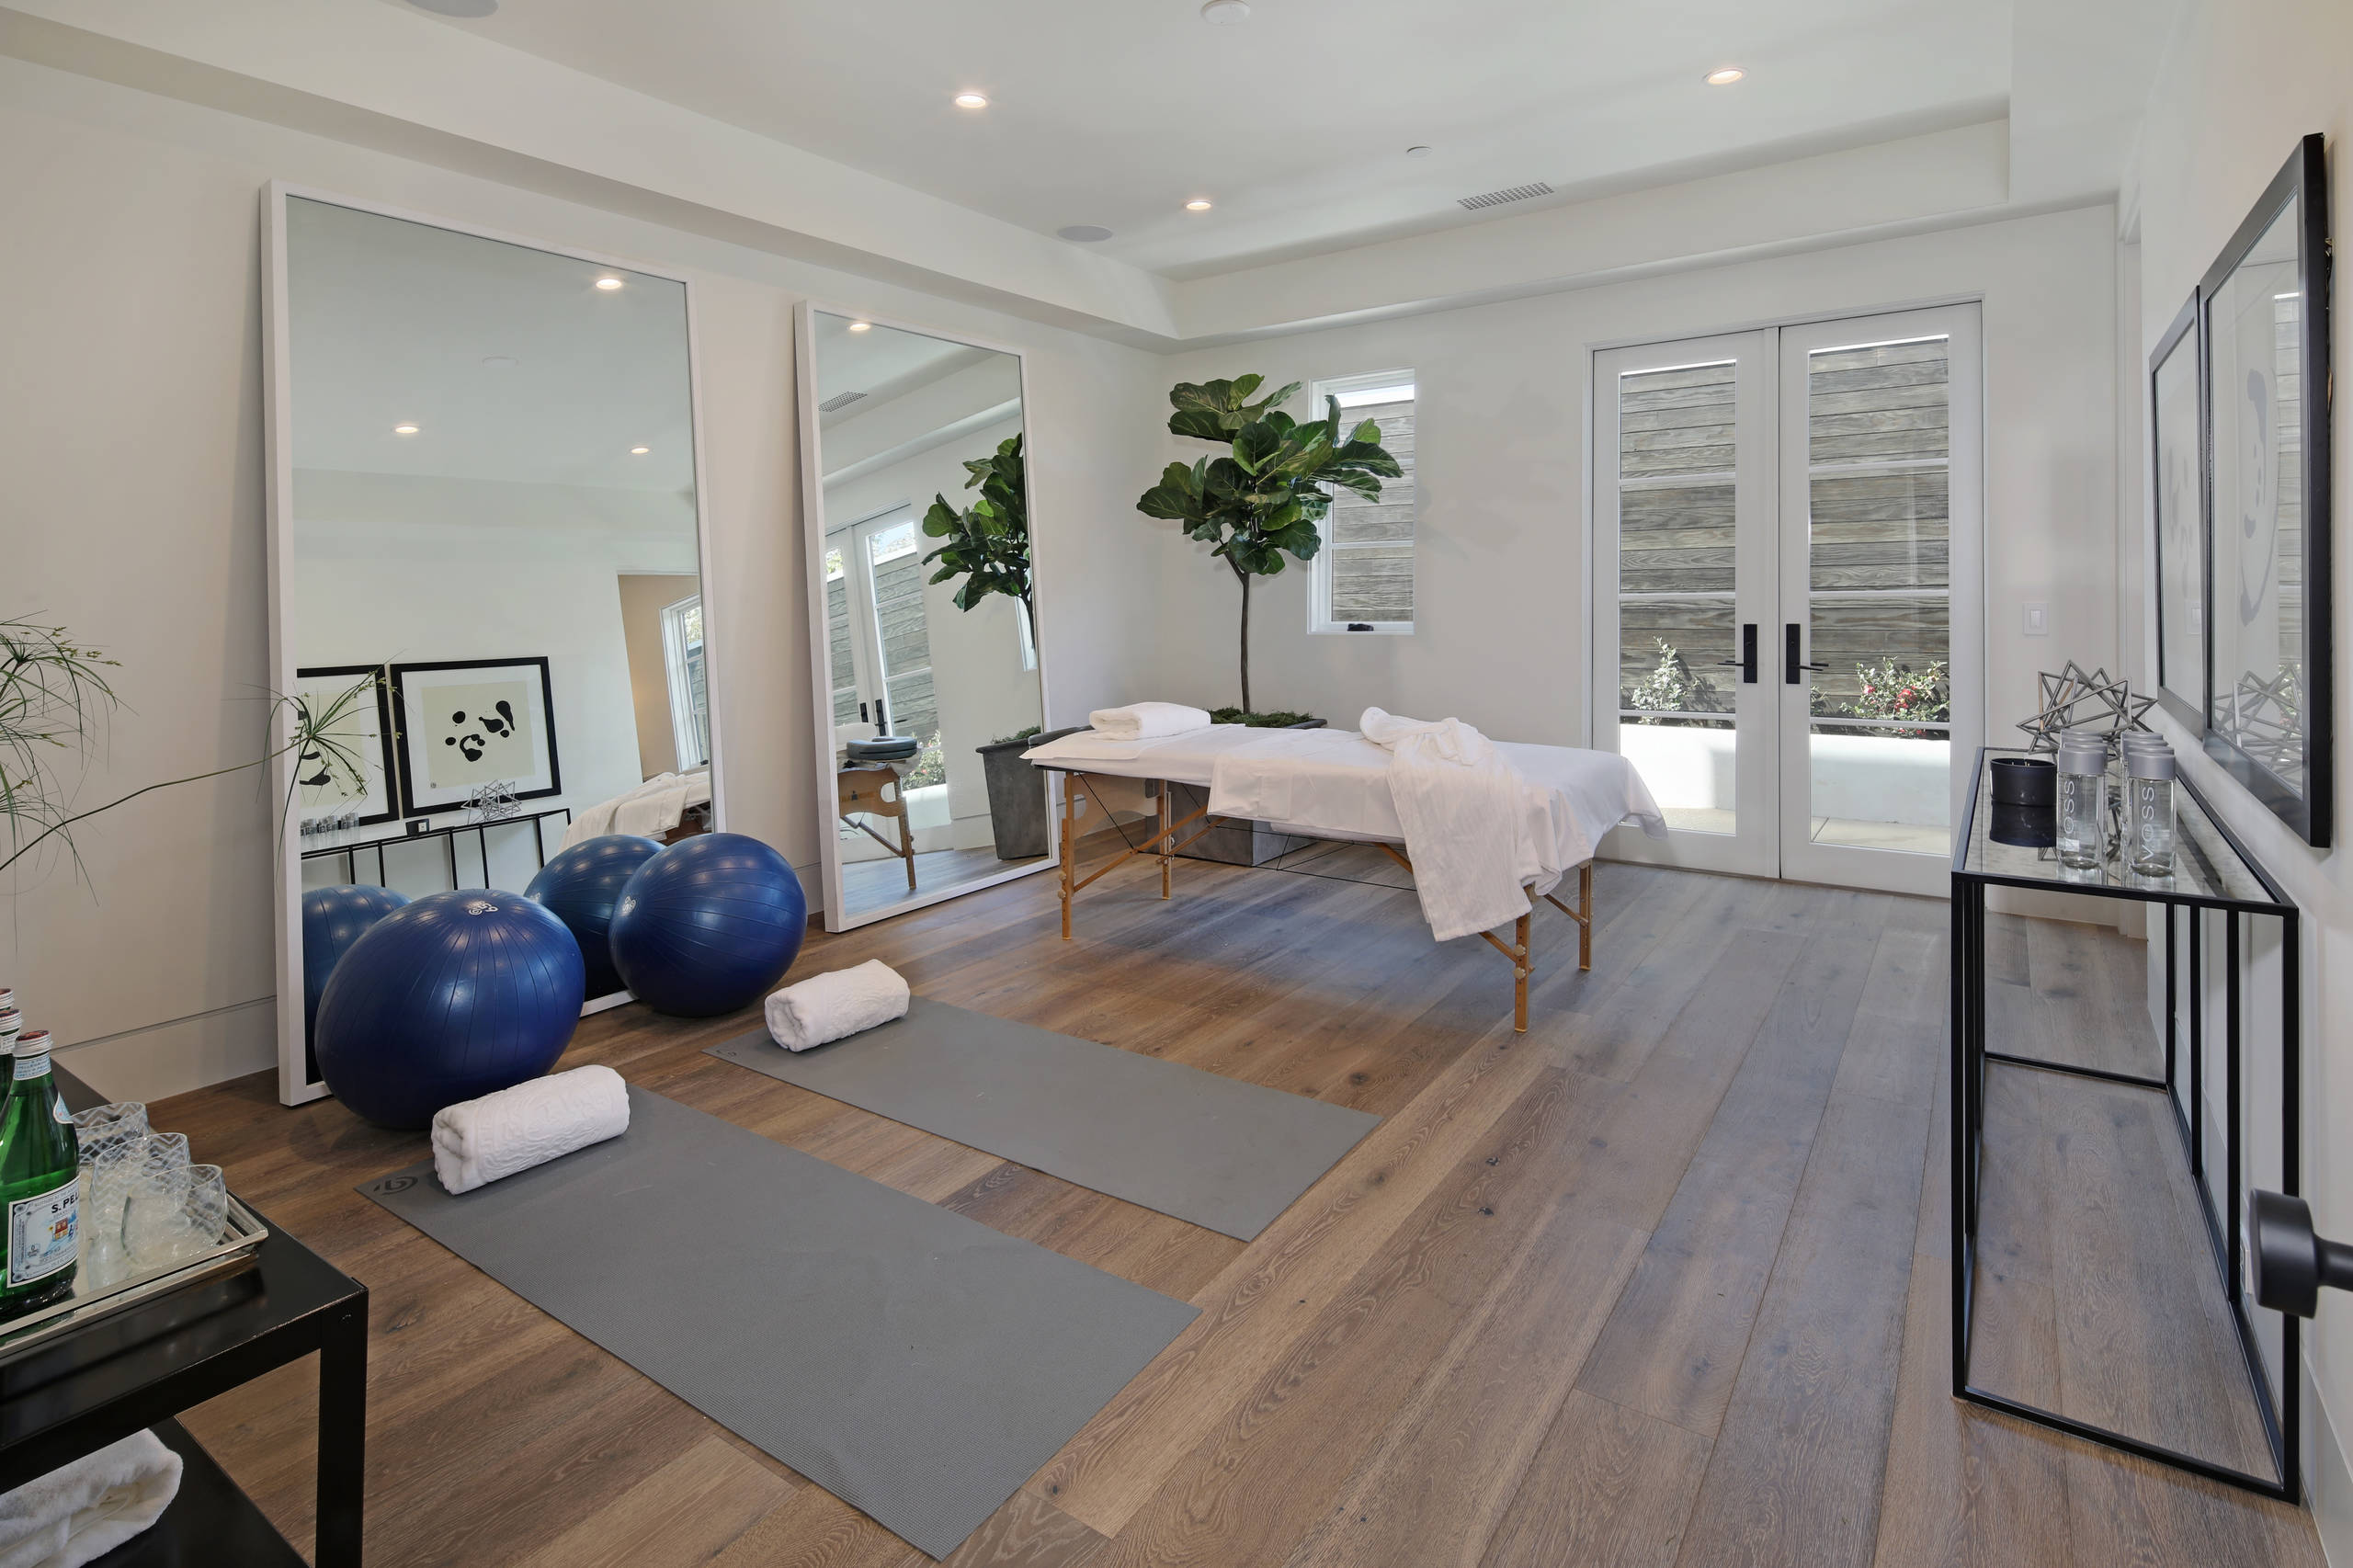 75 Beautiful Home Yoga Studio Pictures Ideas August 2020 Houzz